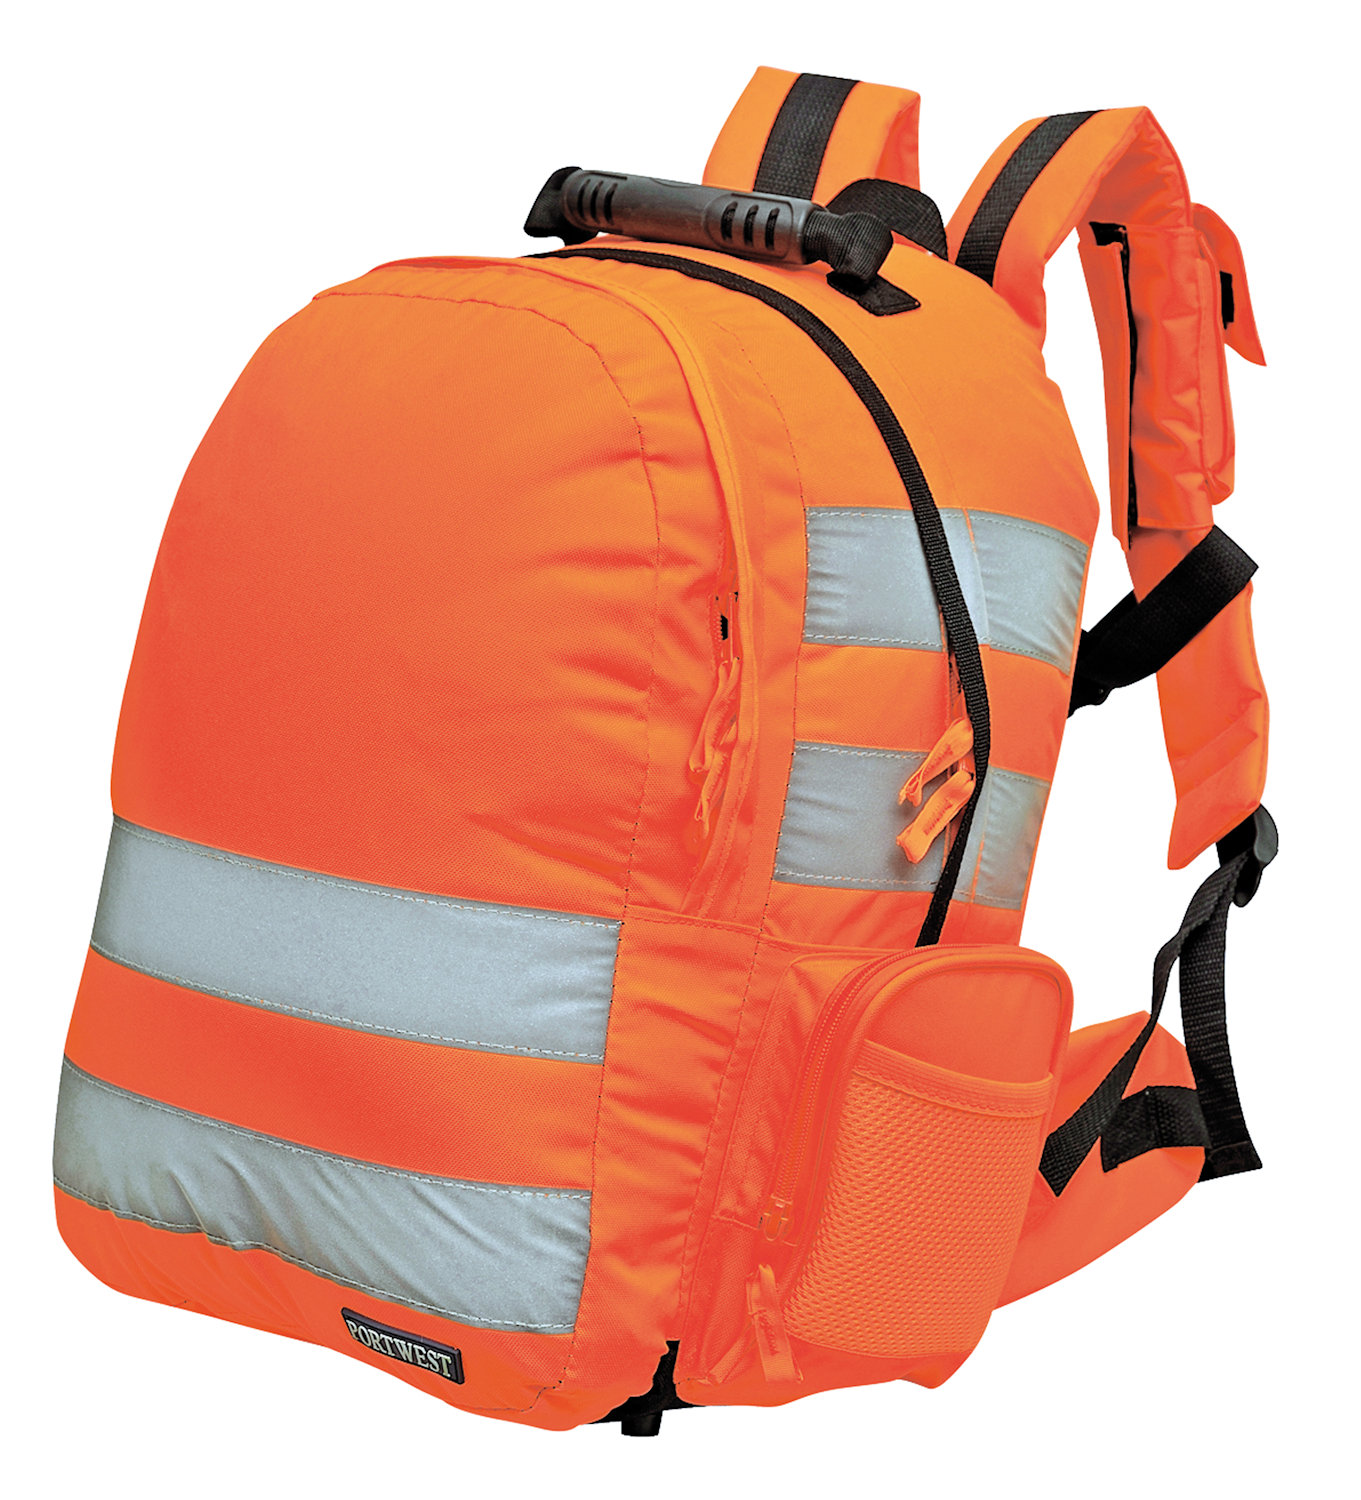 Portwest B904 back pack